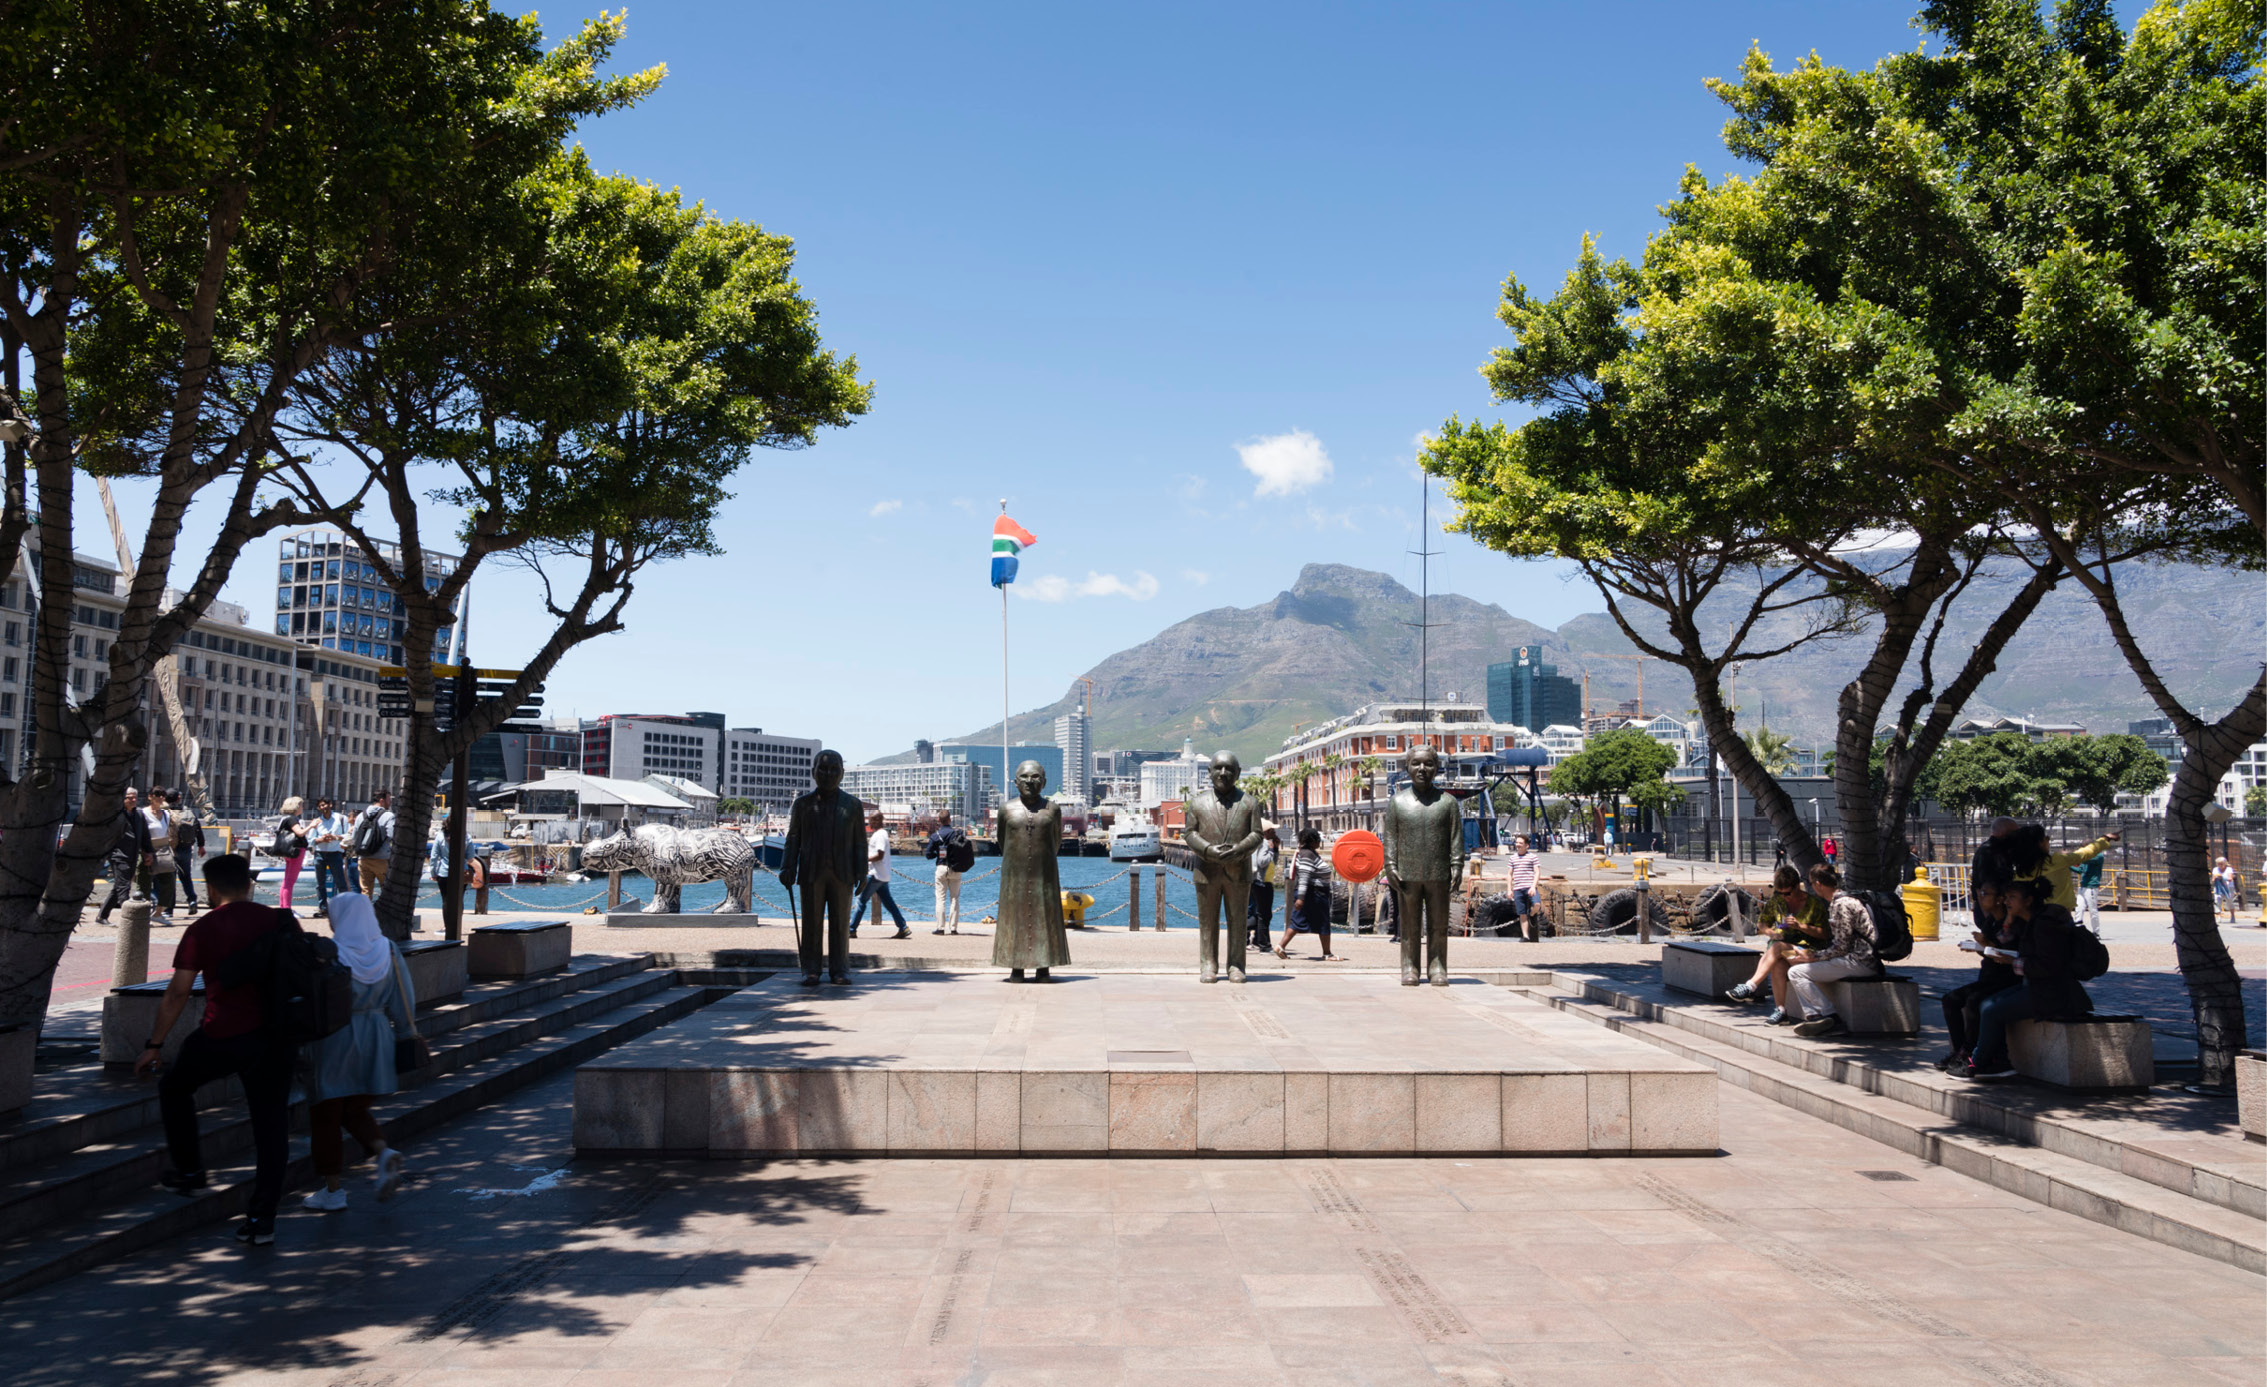 cape town city monument memorial statues